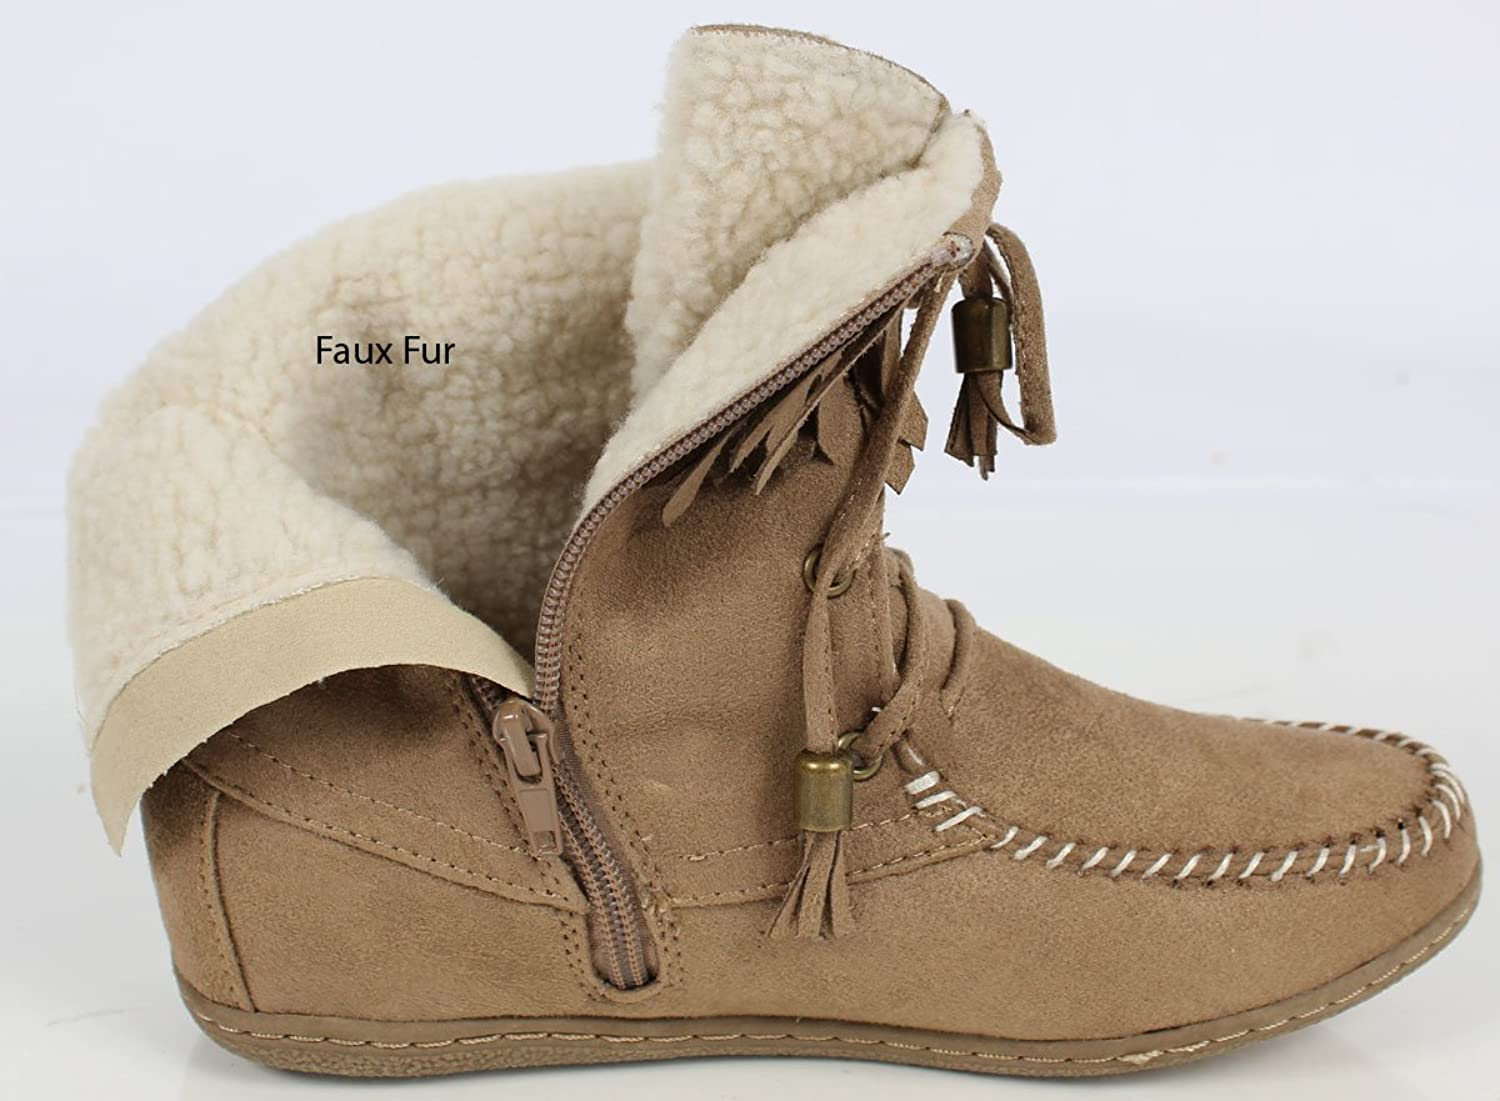 Soda Women's Tying Mukluk Faux Fur Suede Moccasin Ankle Boots